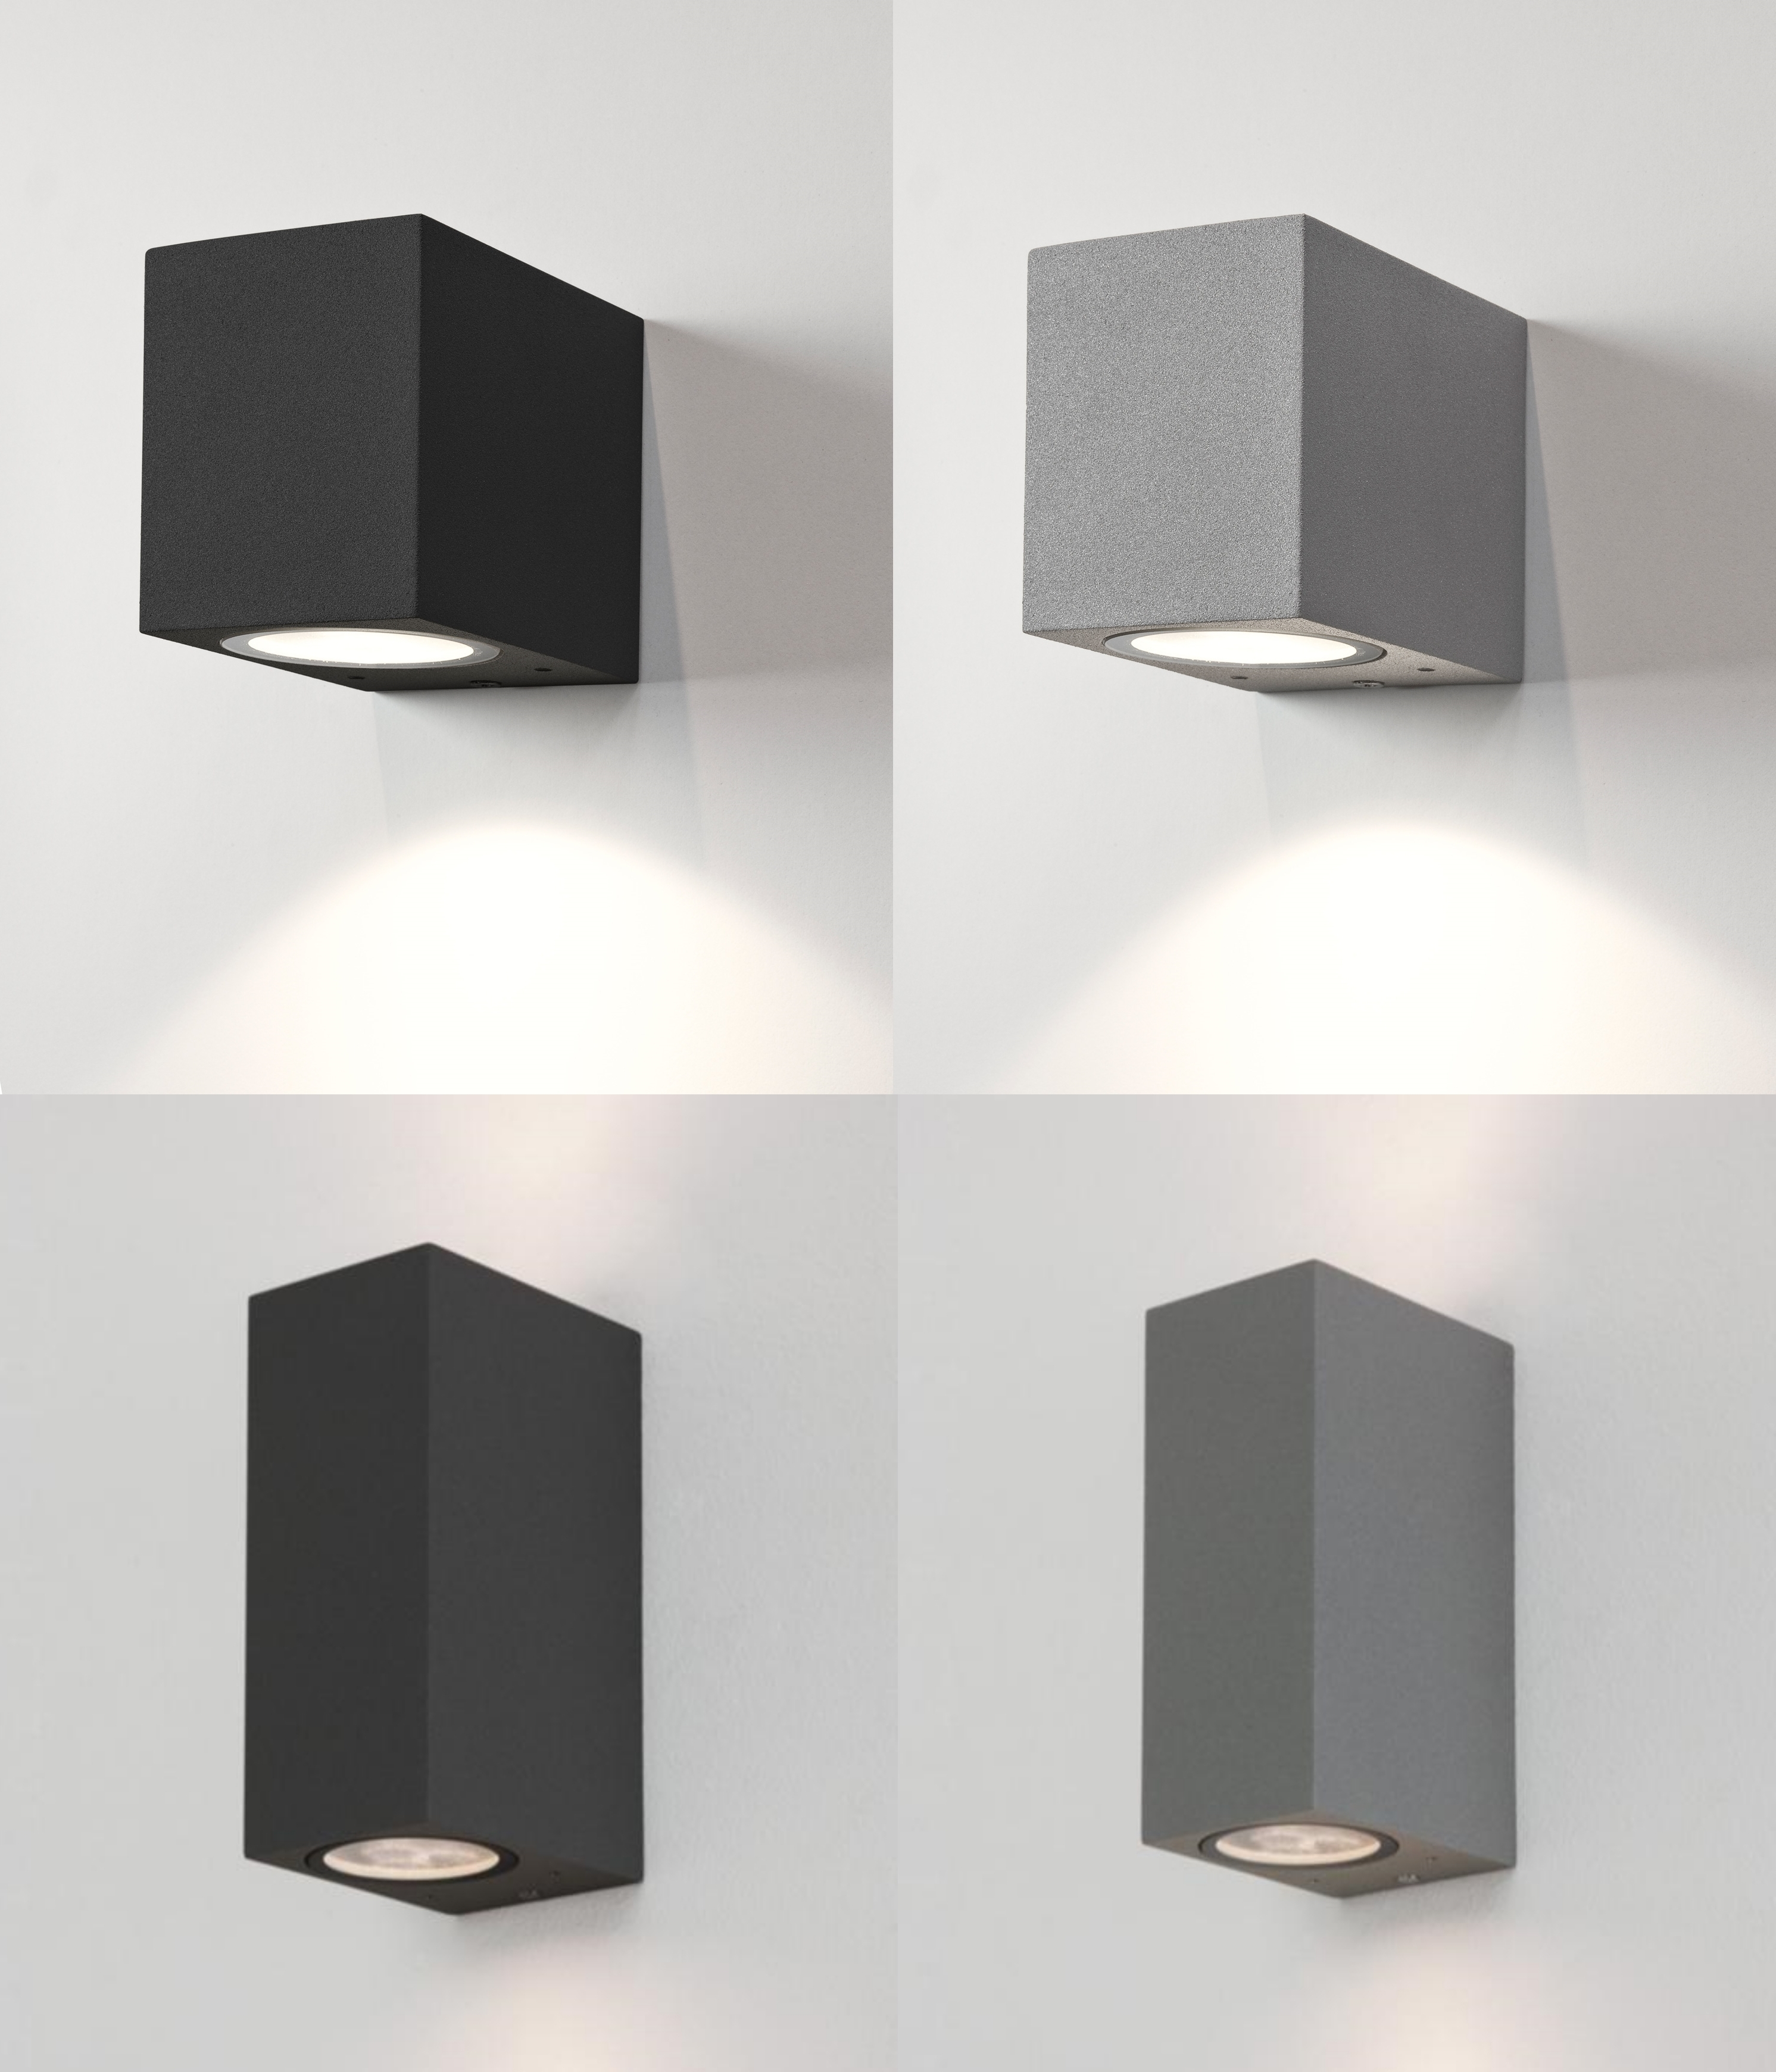 Outdoor Wall Lighting At Ebay Within 2019 Home Decor: Alluring Outdoor Wall Lights Plus Astro Chios External (View 16 of 20)